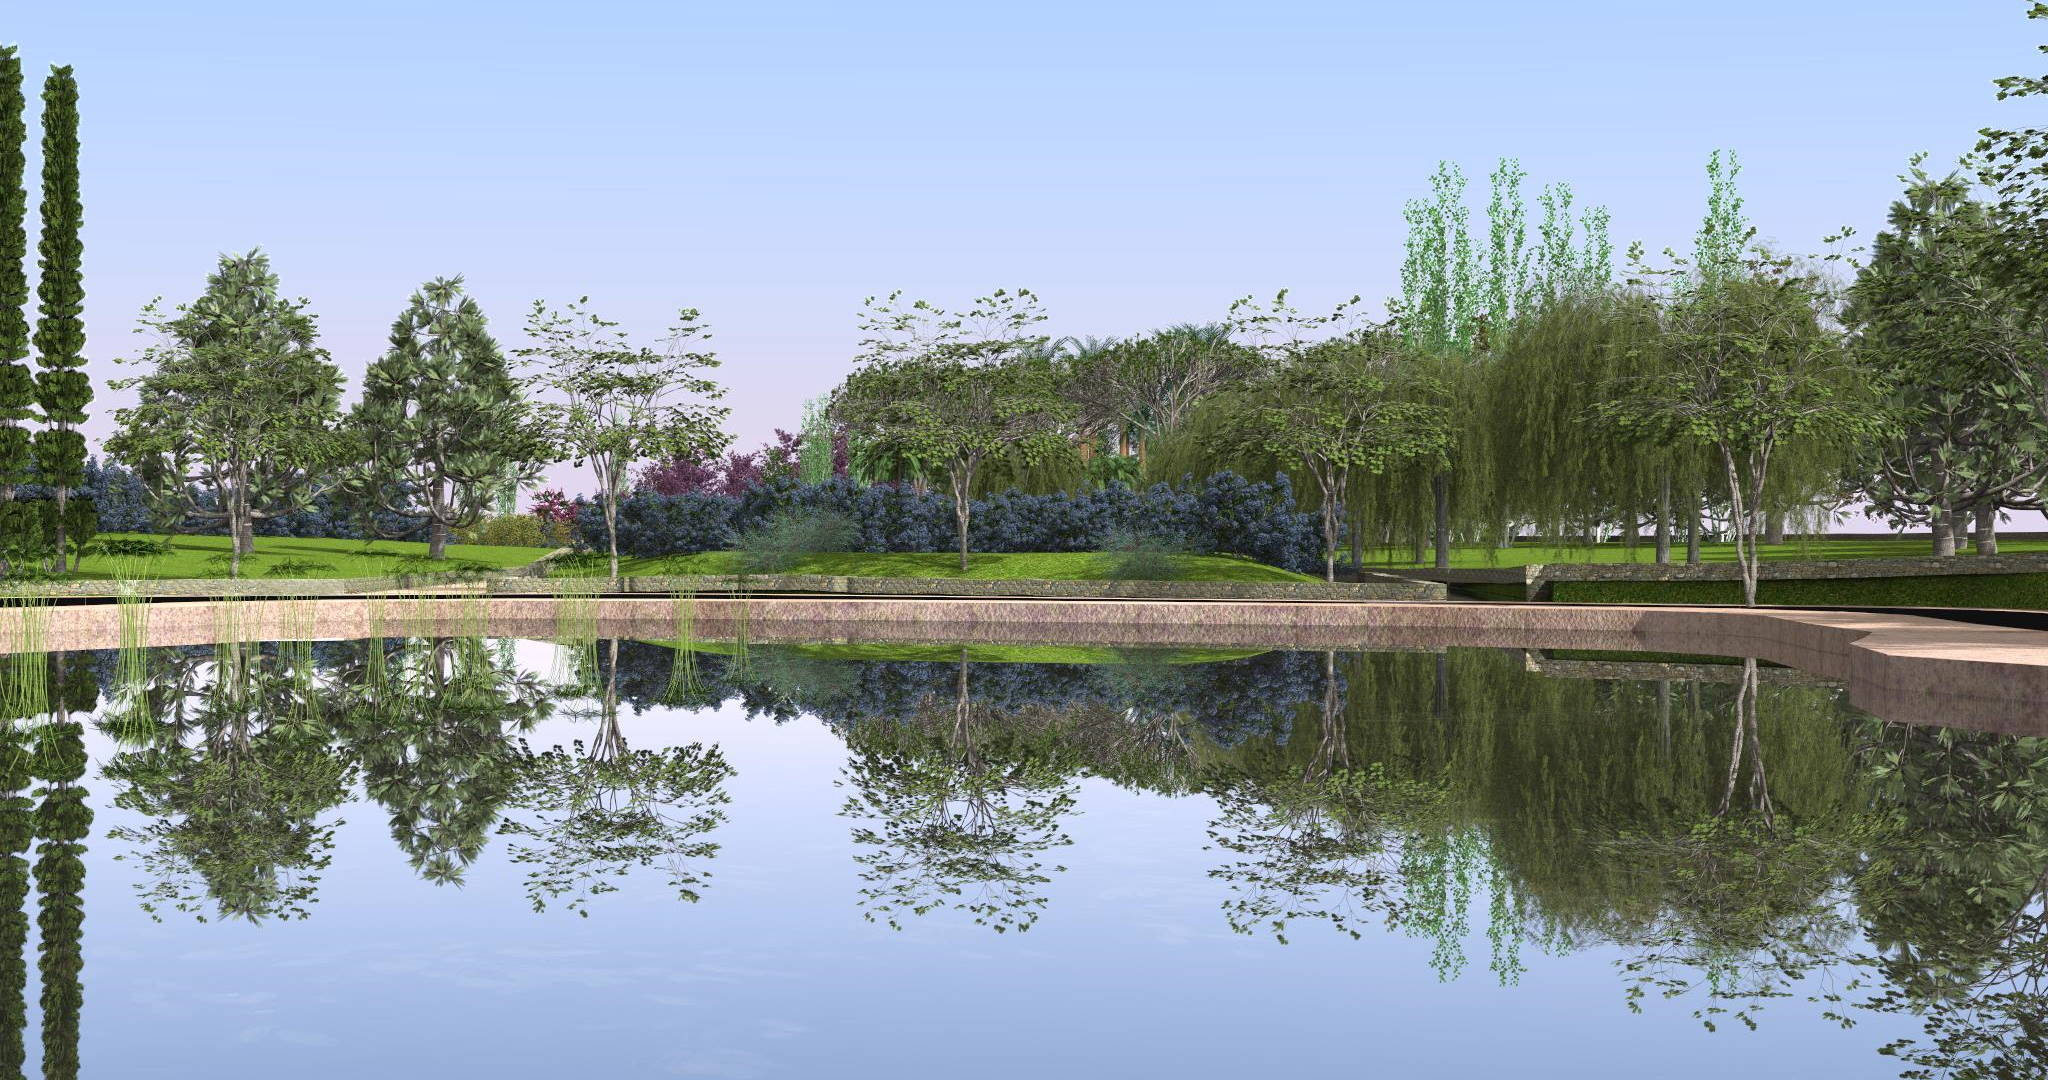 Lands Design project of a pond surrounded by a park with a pathway in front of the water.